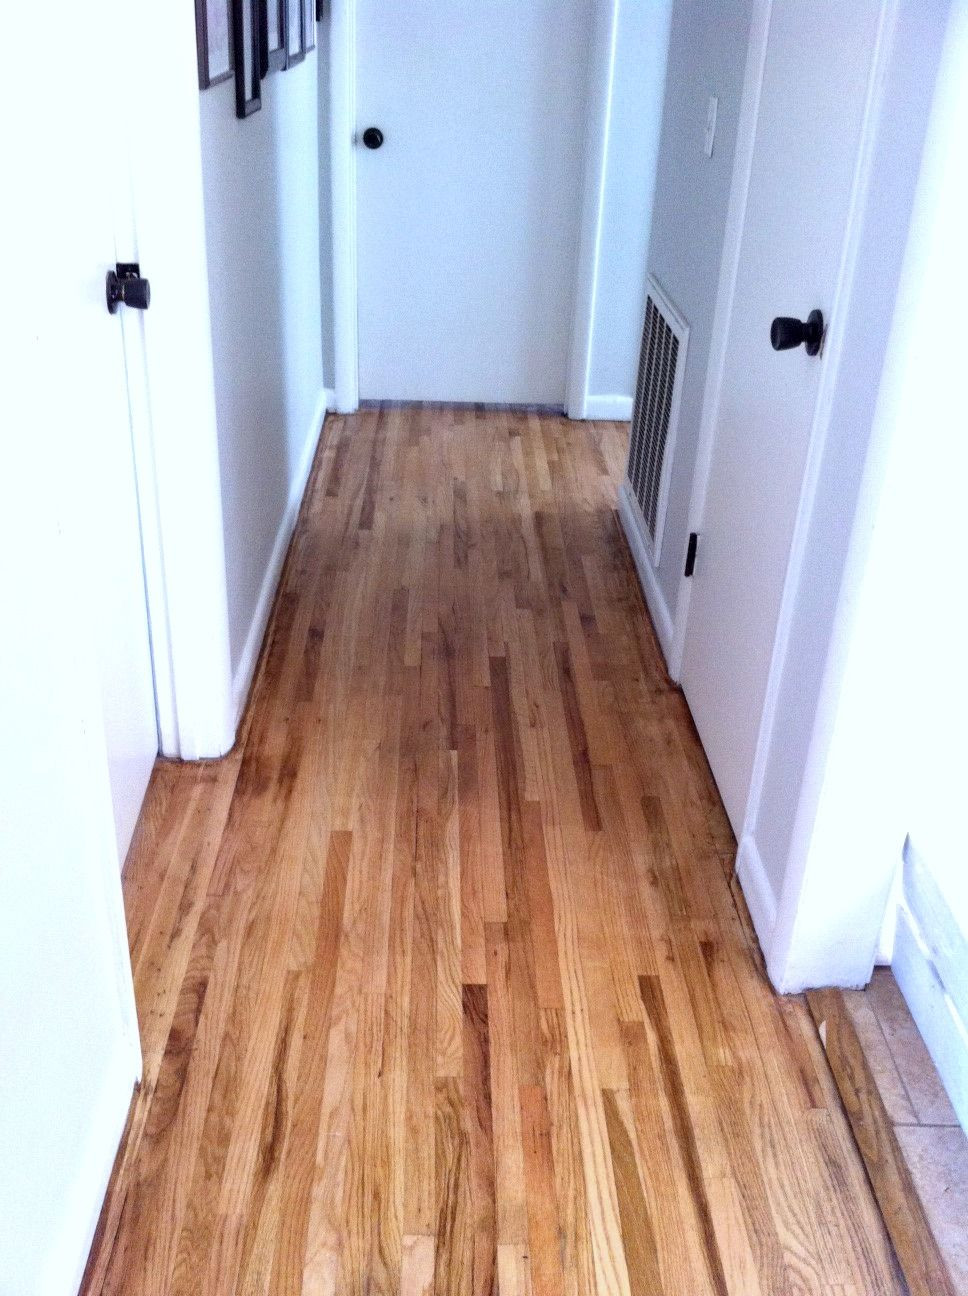 How to Refinish My Hardwood Floors Of This is What Happens when You Dont Listen to the Folks at Lowes within Refinishing Hardwood Floors Includes Price Breakdown Mom In Music City I Didnt Stain My Floors I Think the Natural Wood Goes Well with Our House